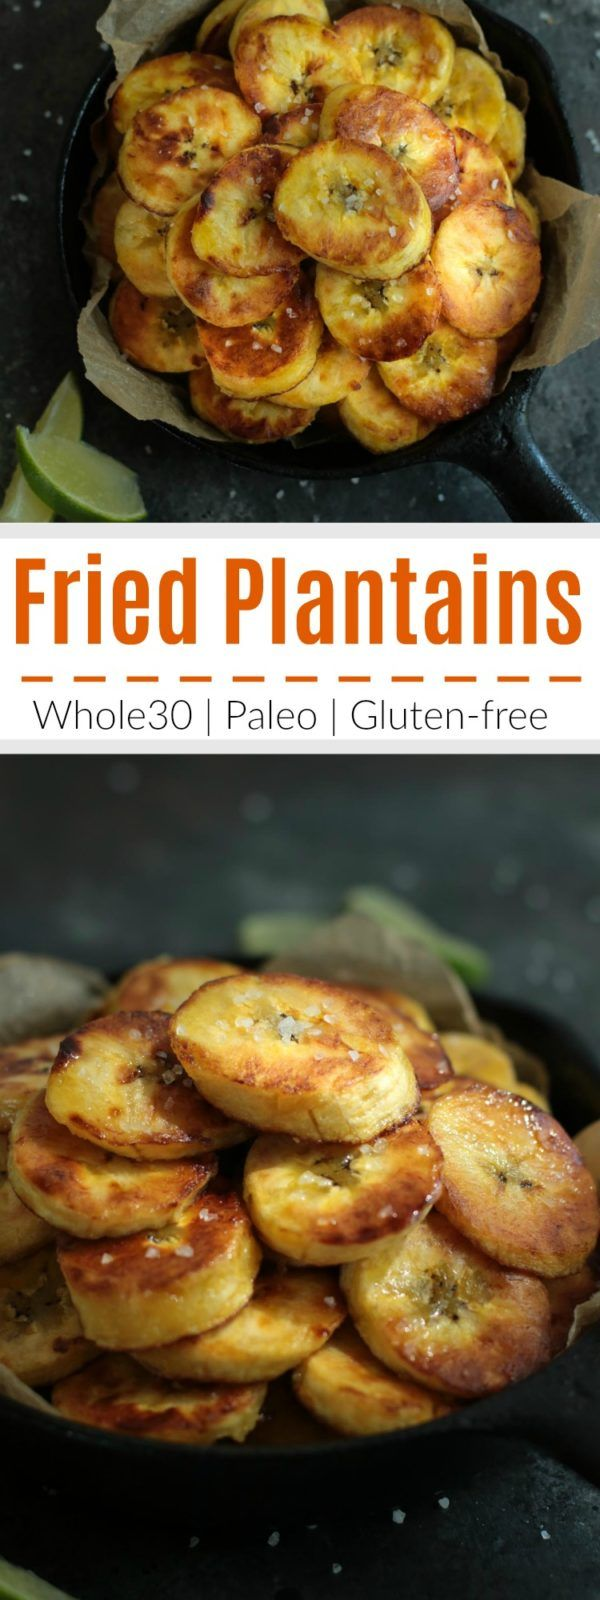 Fried plantains are a delicious and easy starch option to add to any meal. Crunchy on the outside, soft on the inside. For a vegan-friendly option, substitute coconut oil for the ghee. | The Real Food Dietitians | https://therealfoodrds.com/fried-plantains-whole30/